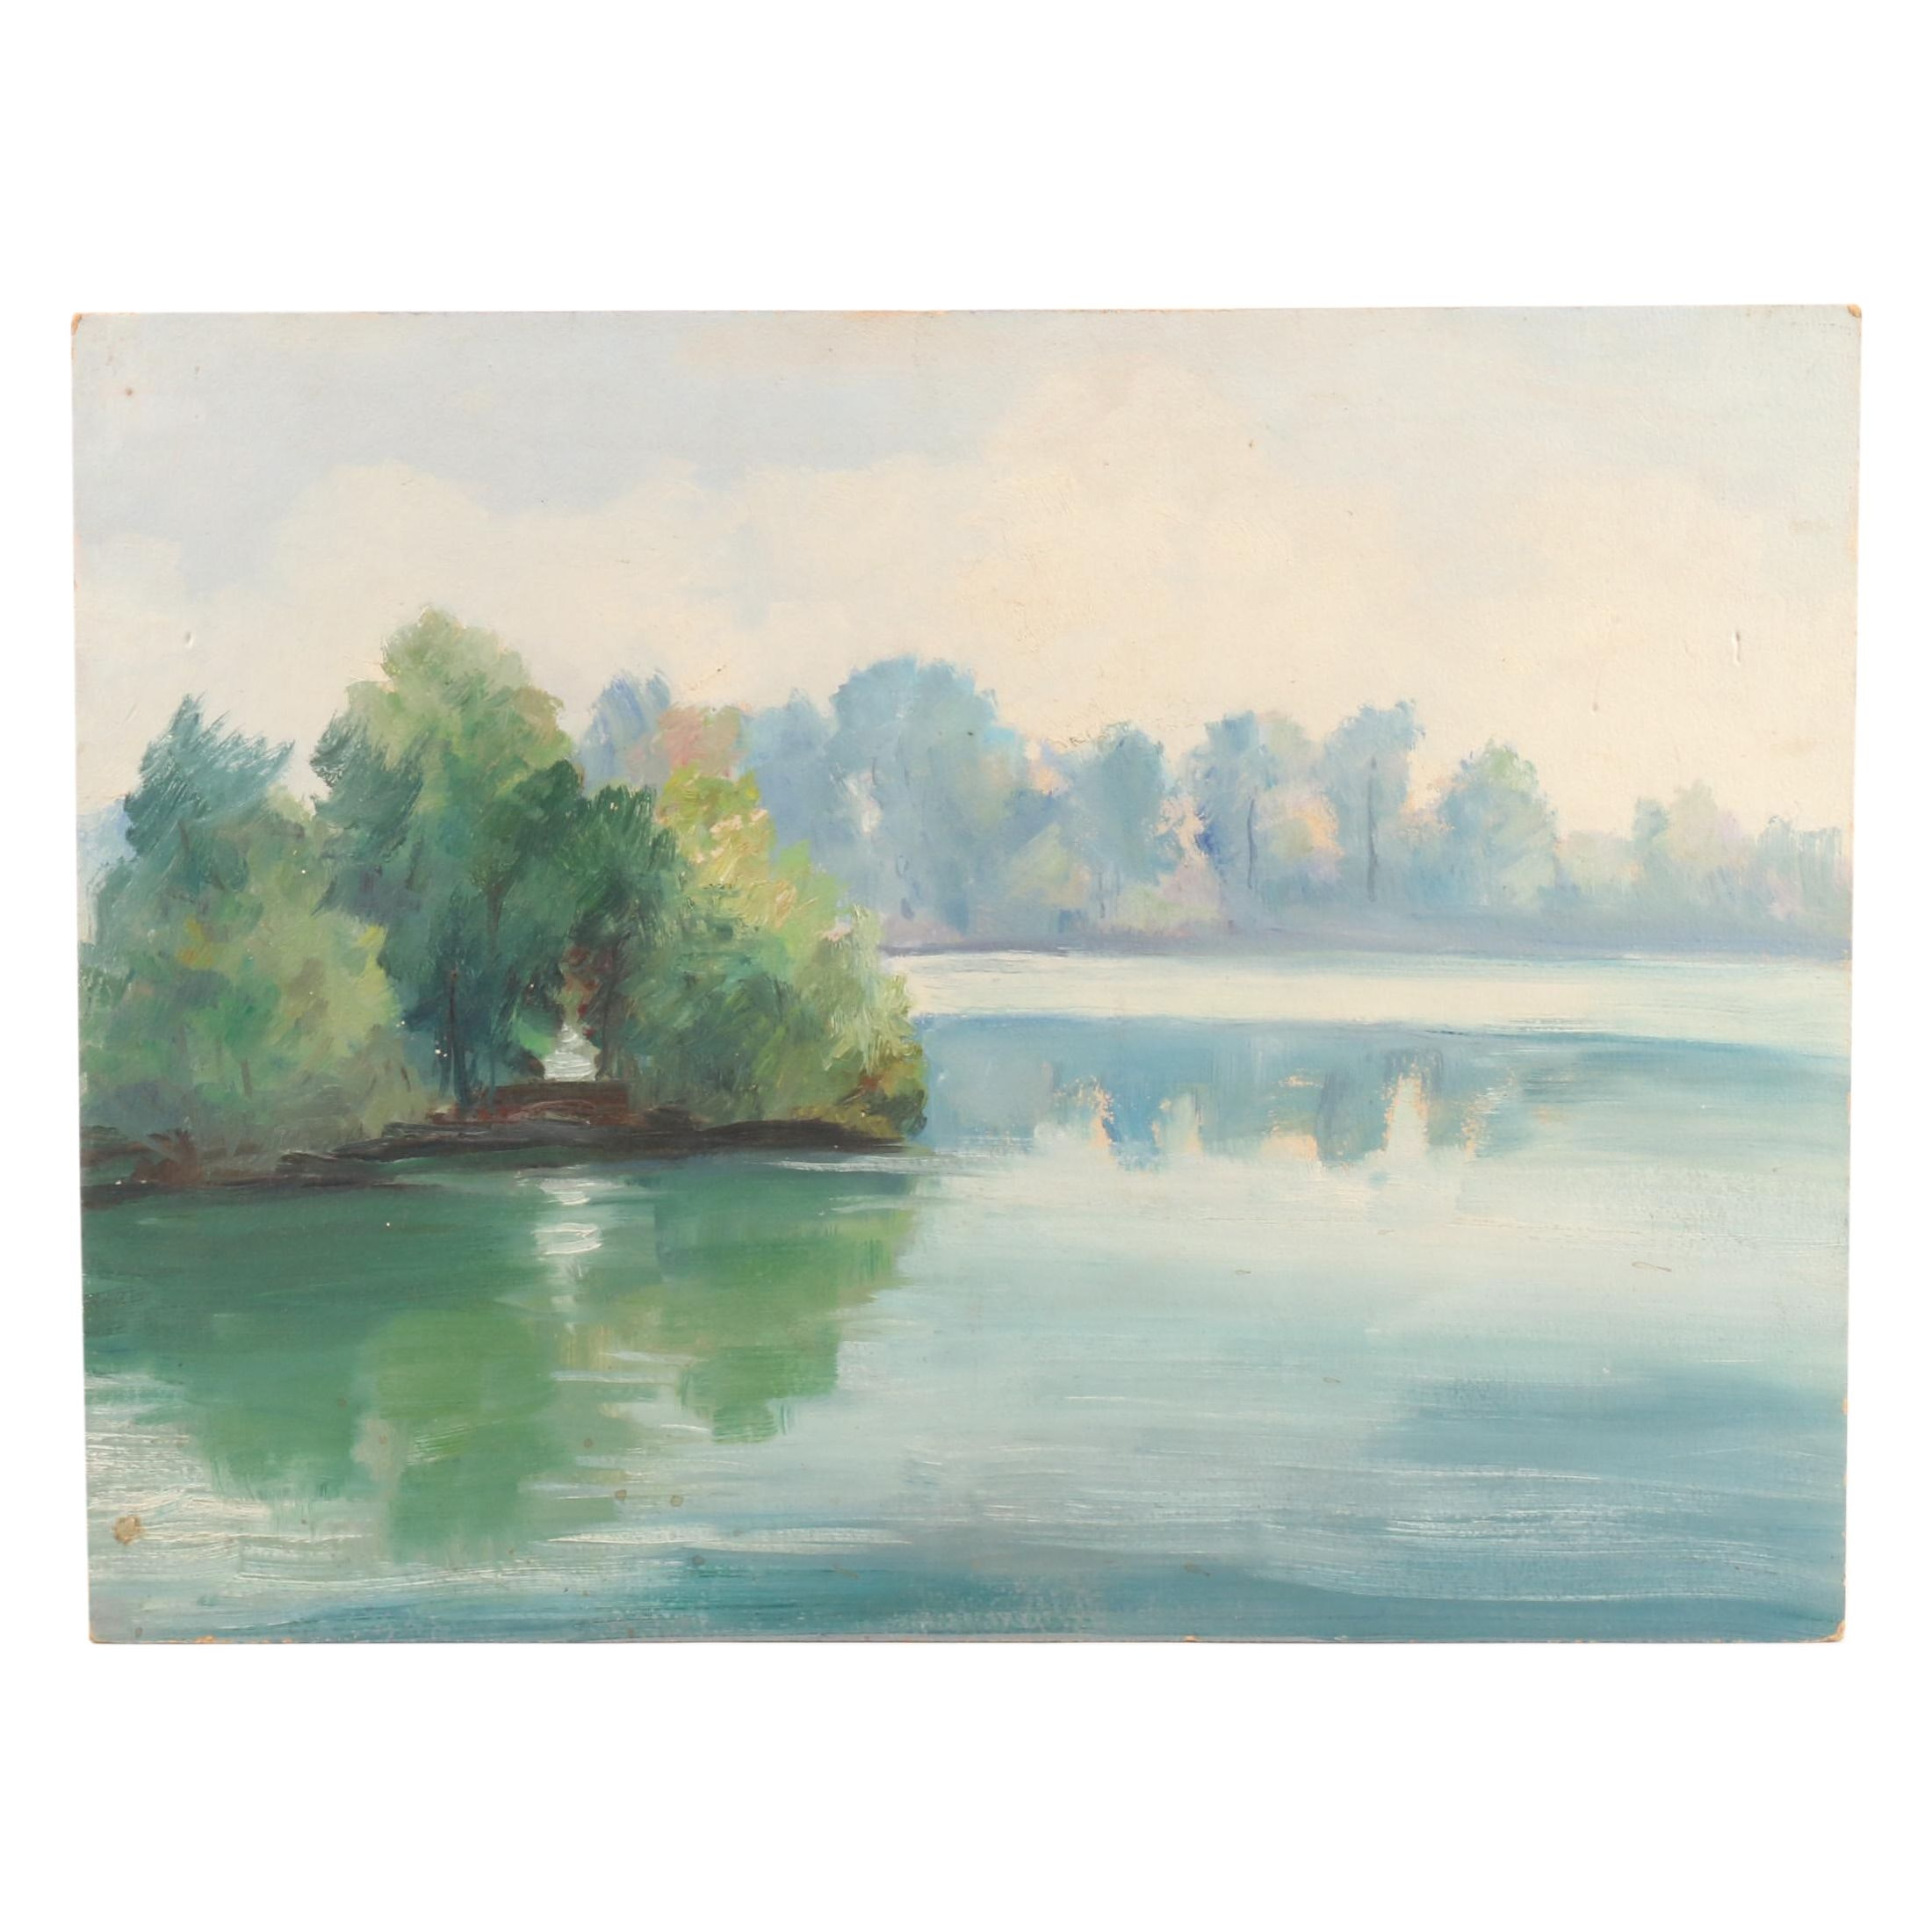 Vintage Landscape Oil Painting of Lake Scene